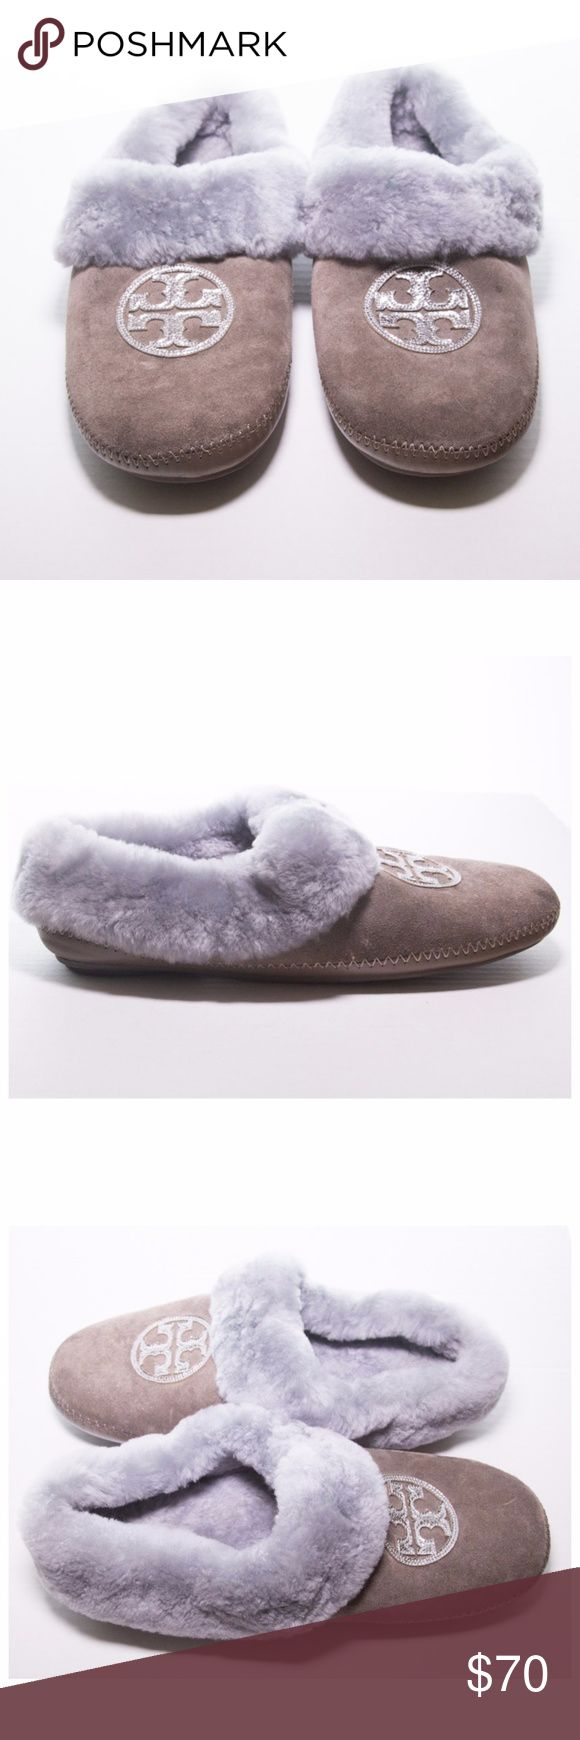 """Tory Burch Coley Metallic-Logo Shearling Slipper Very comfortable slippers. Suede upper with metallic leather signature double-""""T"""" logo applique. Dyed sheep shearling lining and cuff.  Pre-loved and in very good condition.  Show some discoloration from normal wear.  Size 10. Tory Burch Shoes"""